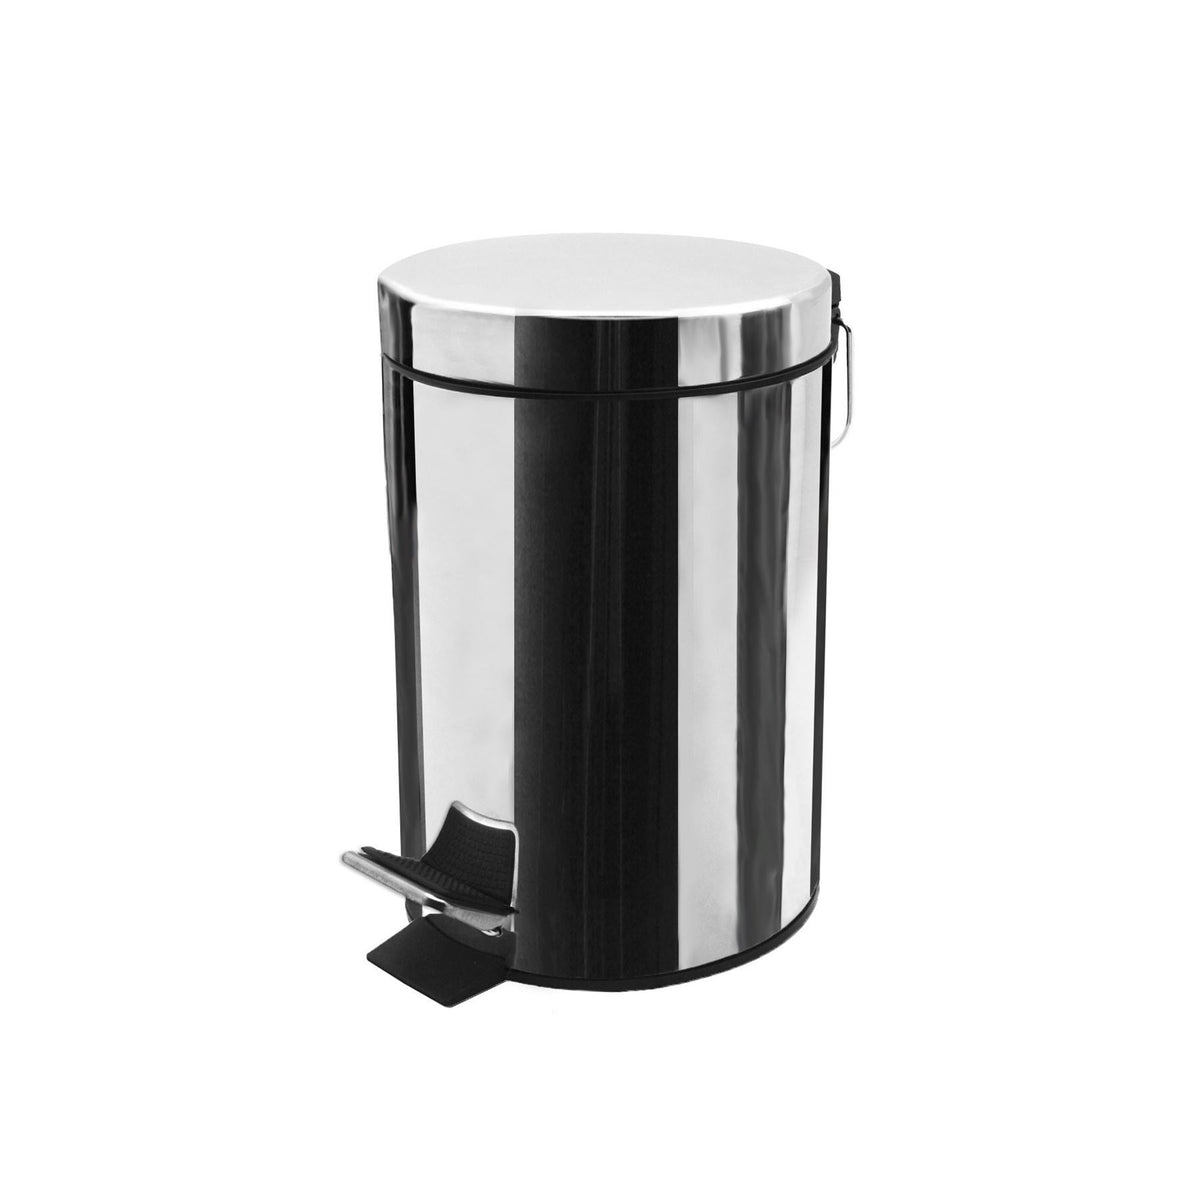 Harbour Housewares Bathroom Pedal Bin With Inner Bucket - Chrome - 3L